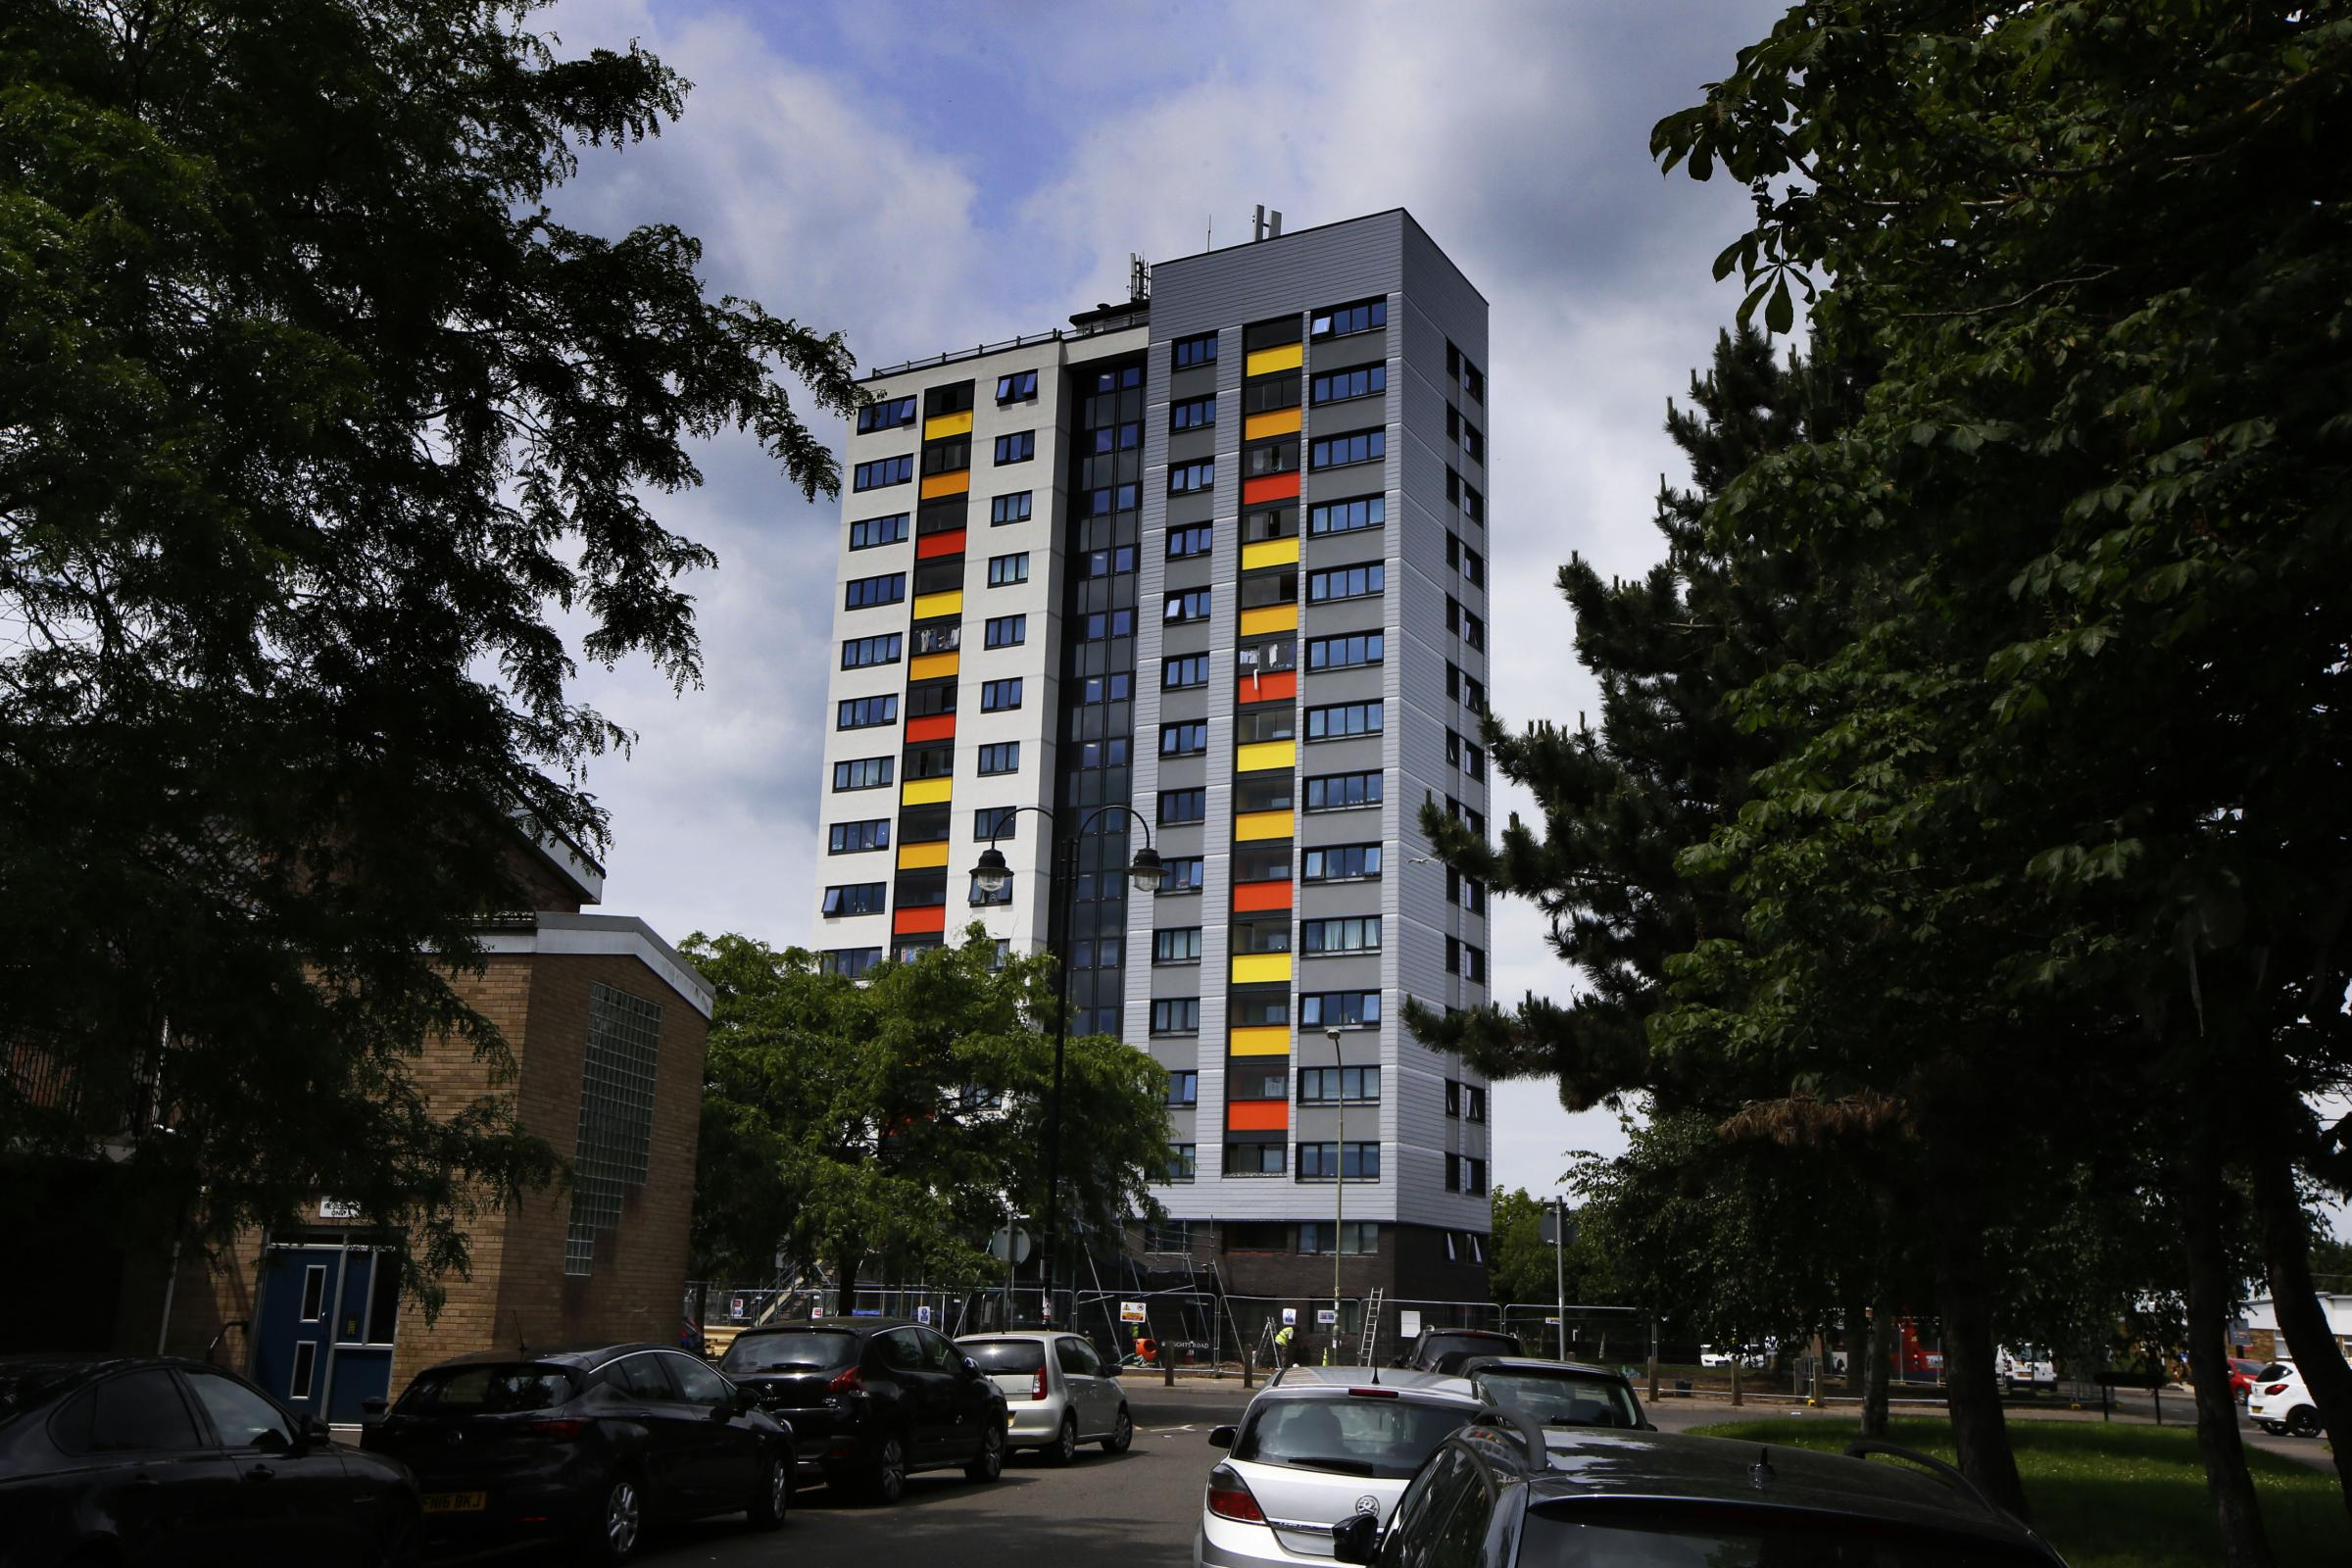 Windrush tower, Blackbird Leys.